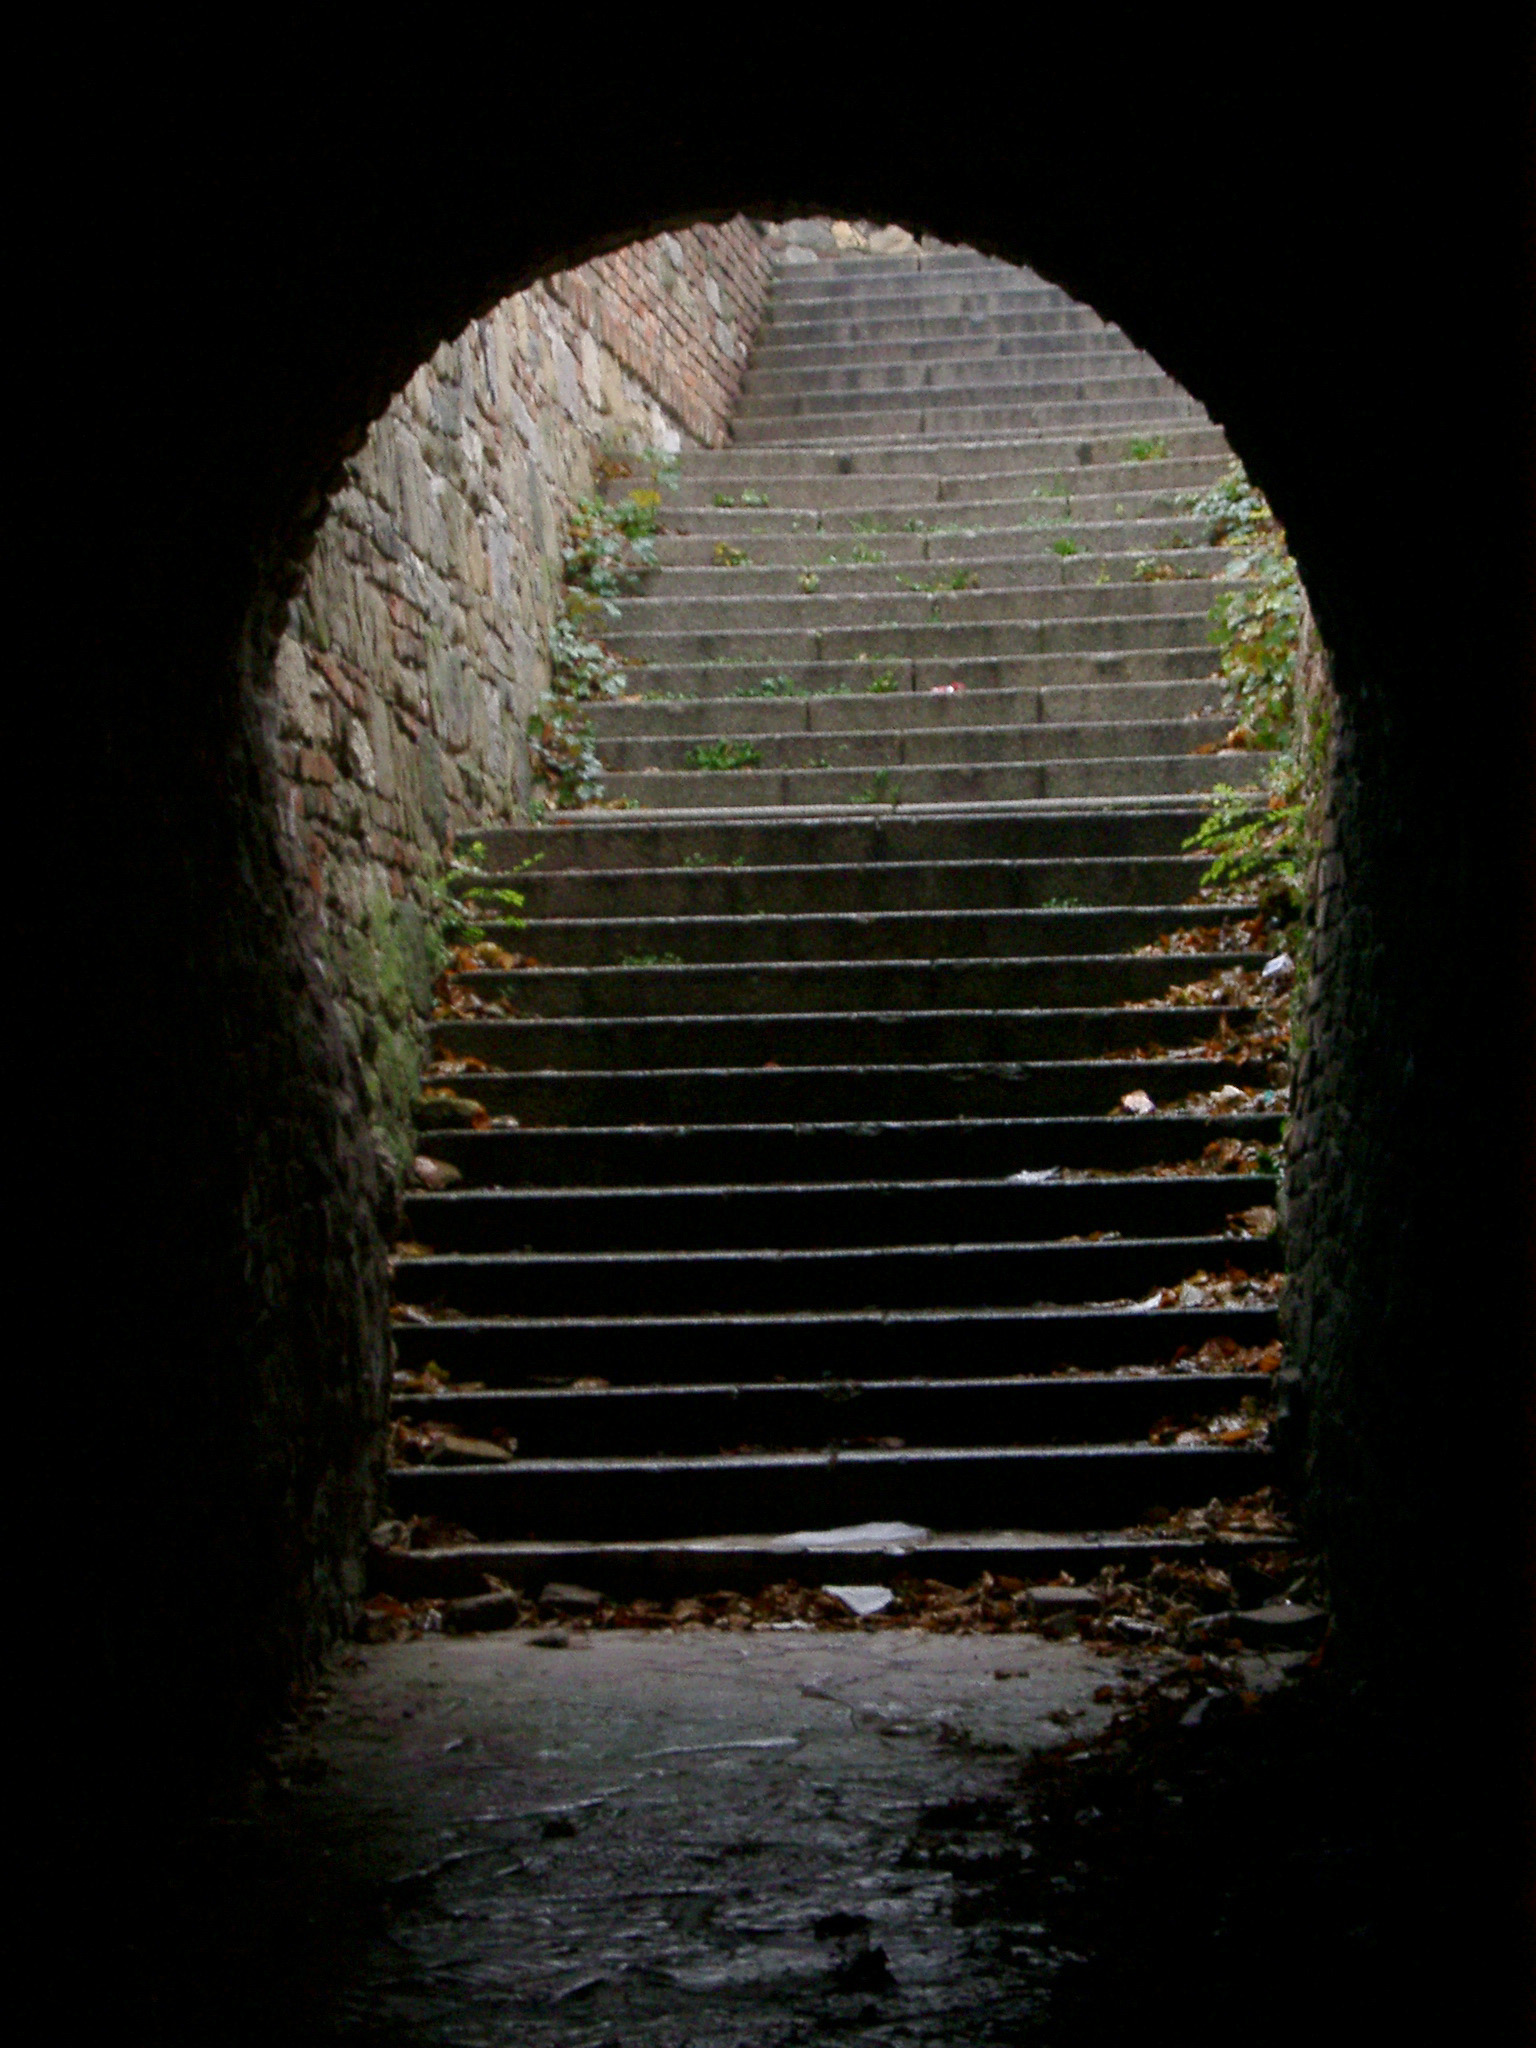 Free Stock Photo 272-castle_steps_P1395.jpg   freeimageslive